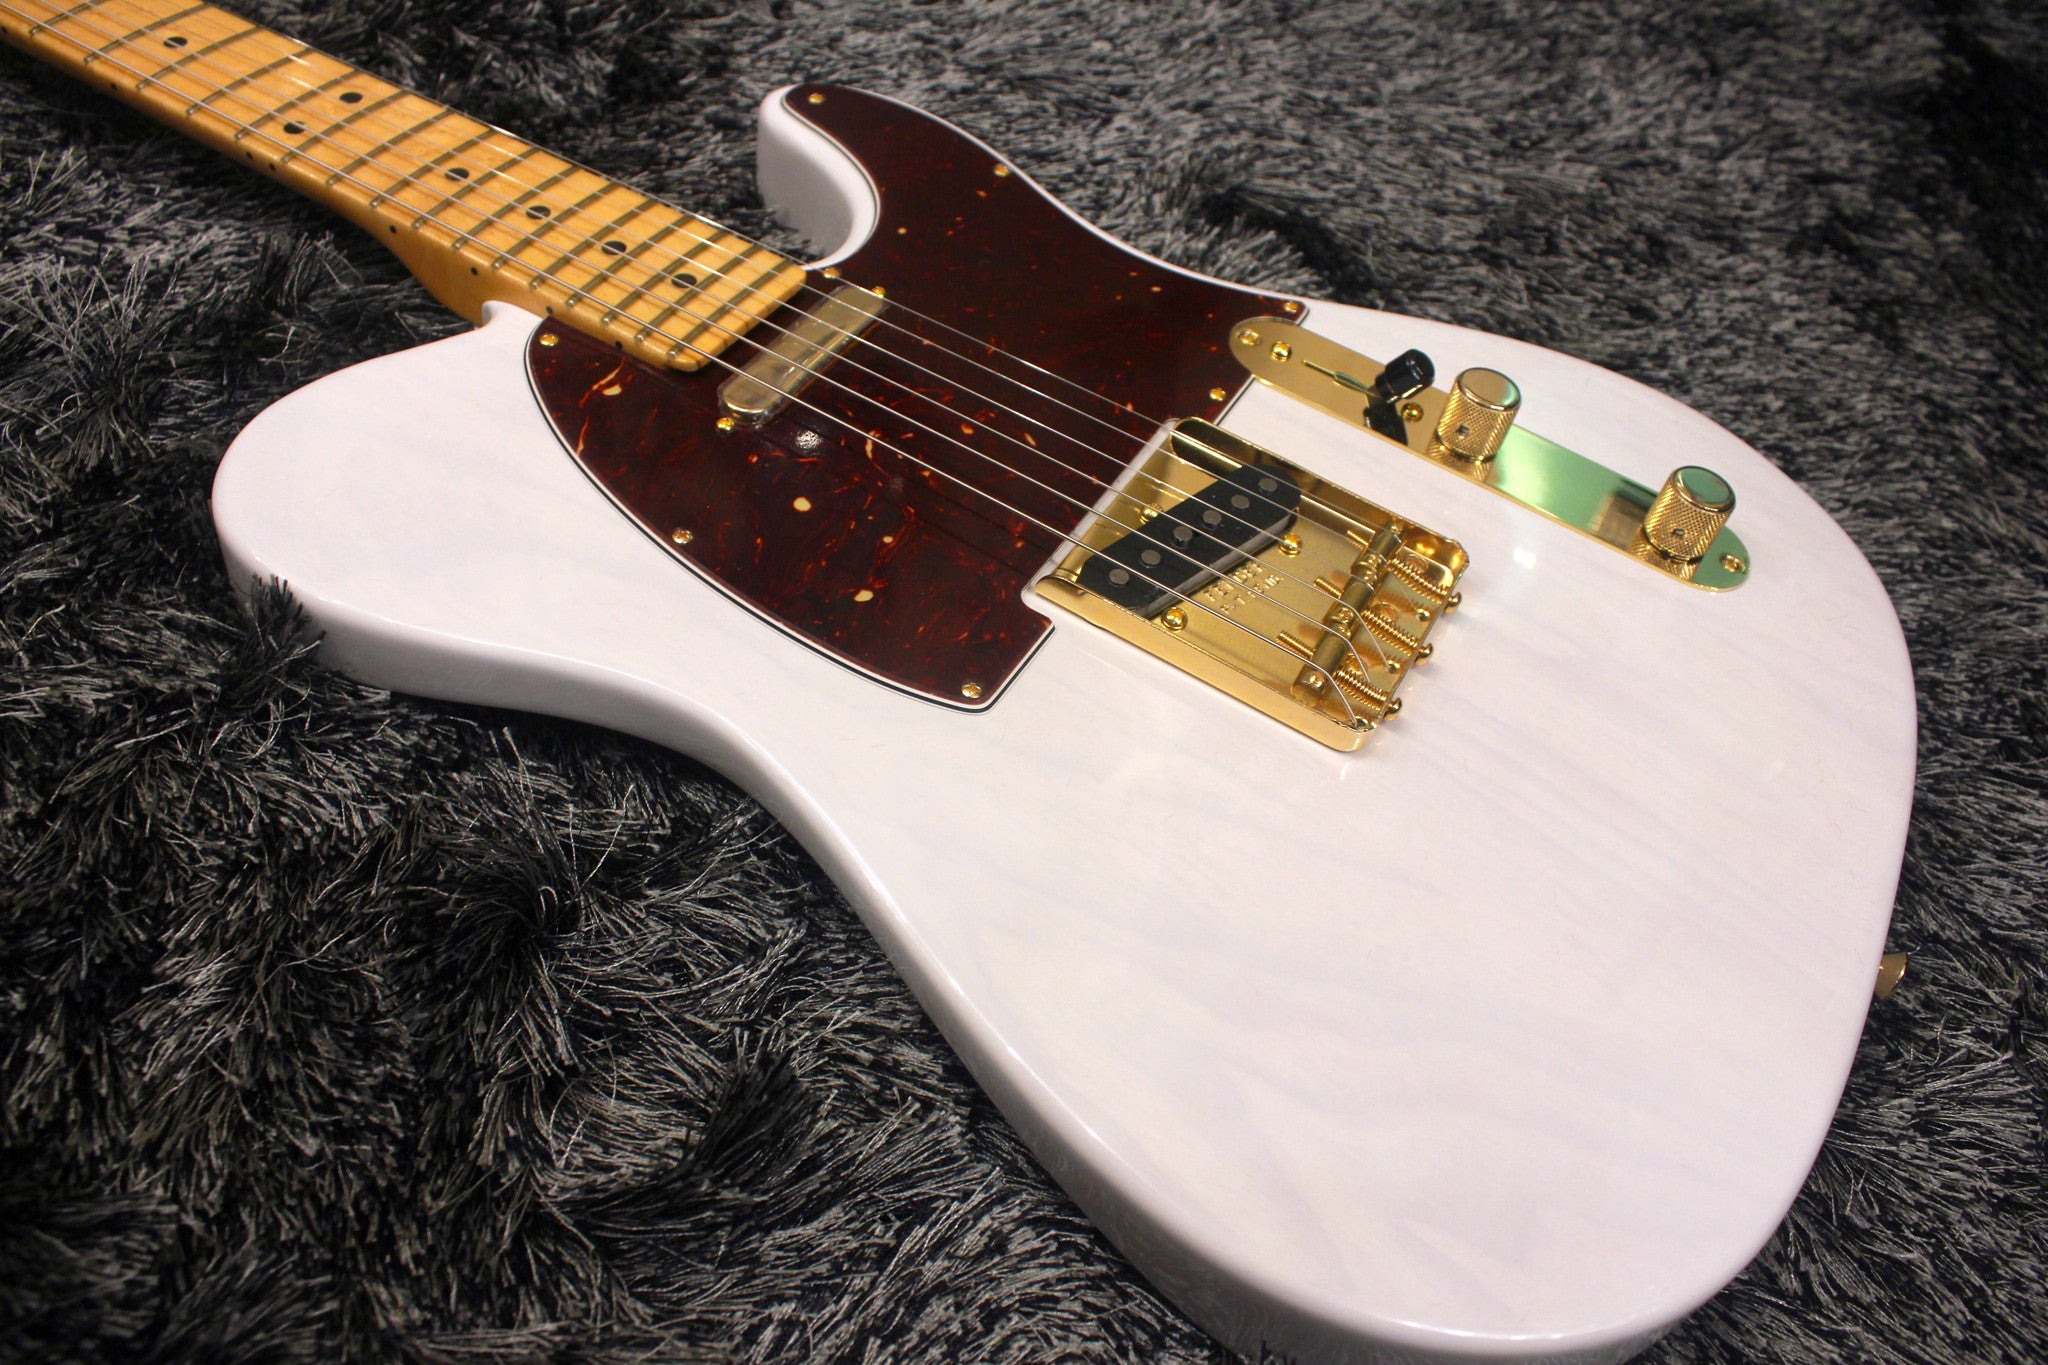 Fender 2016 Limited Edition Select Light Ash Telecaster - White Blonde